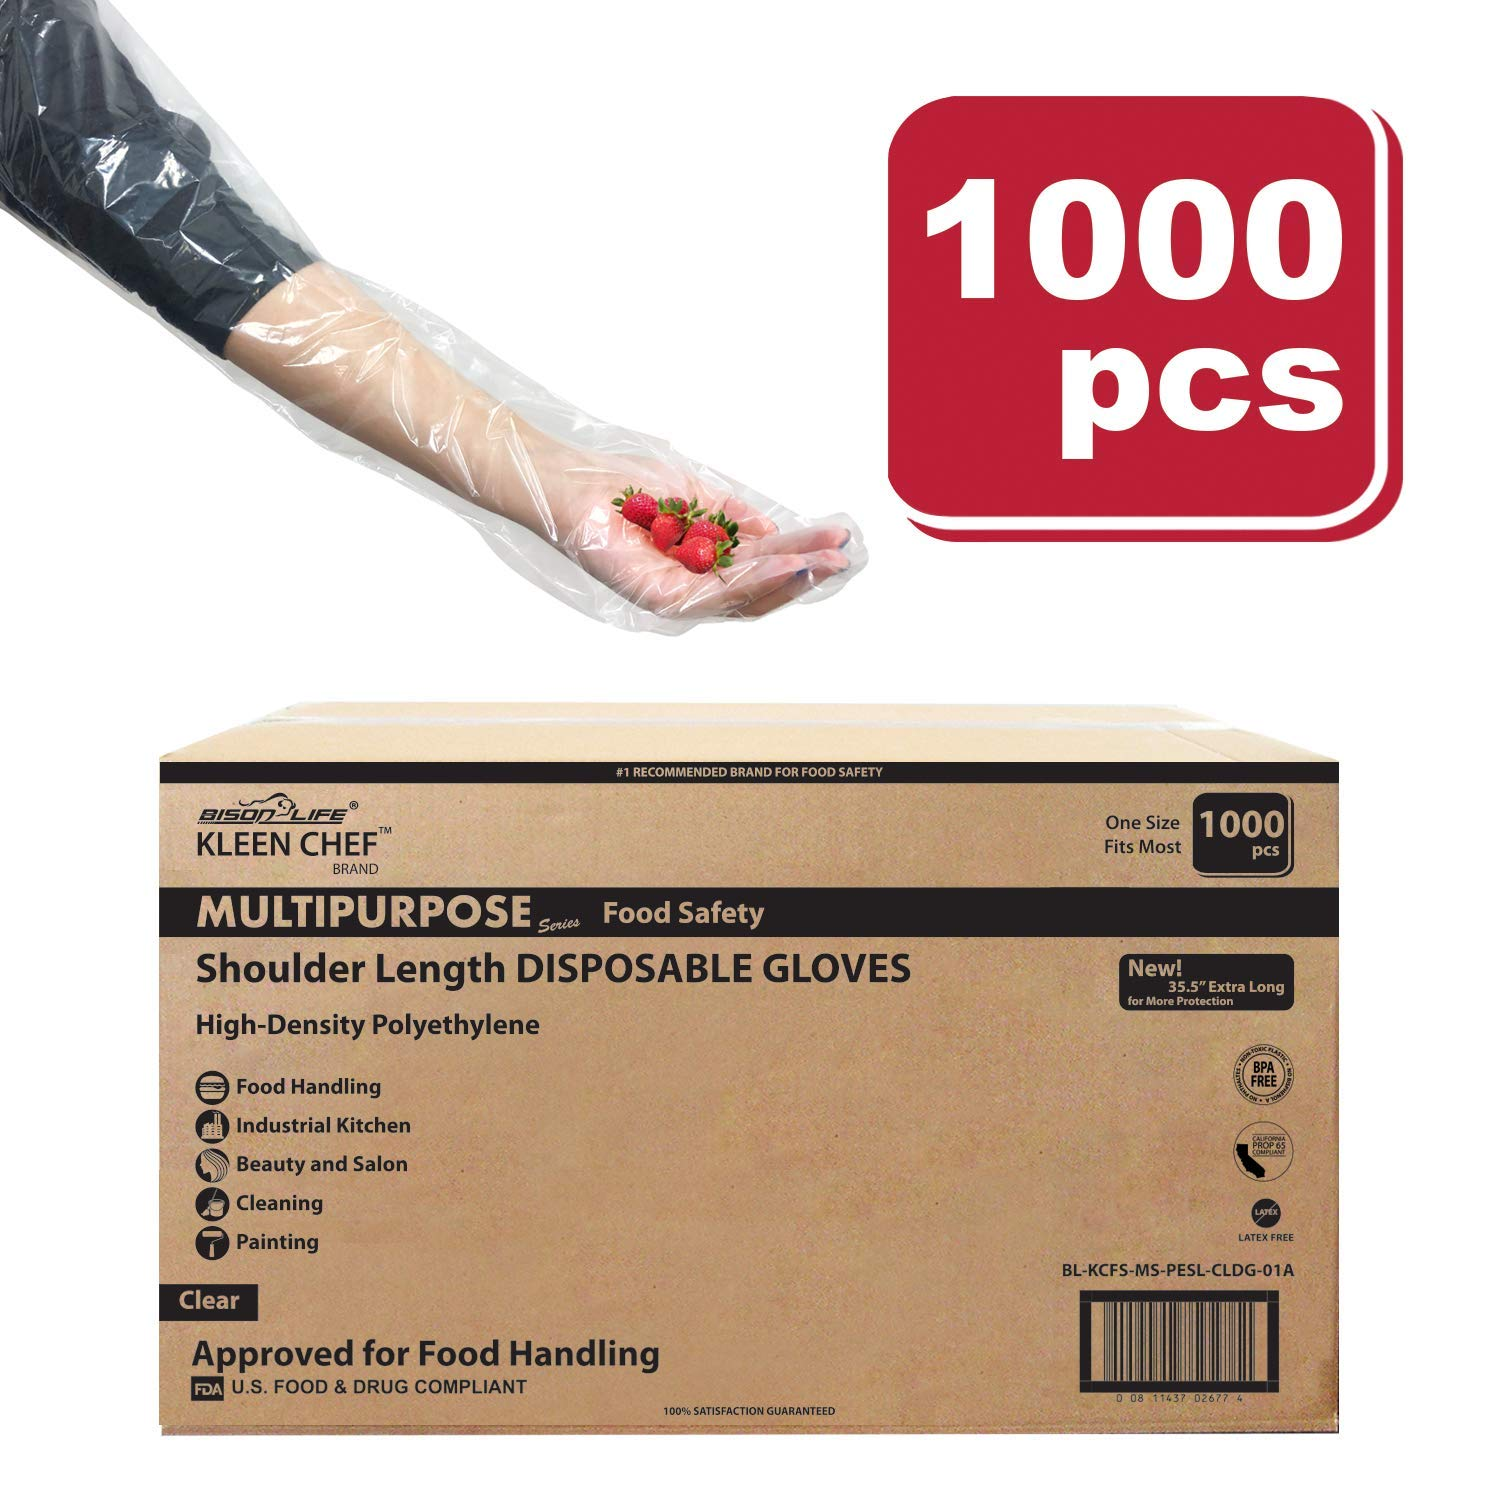 Disposable Food Handling Shoulder Length Poly Gloves | One Size Fits Most, 50 per box (Case of 20 boxes)